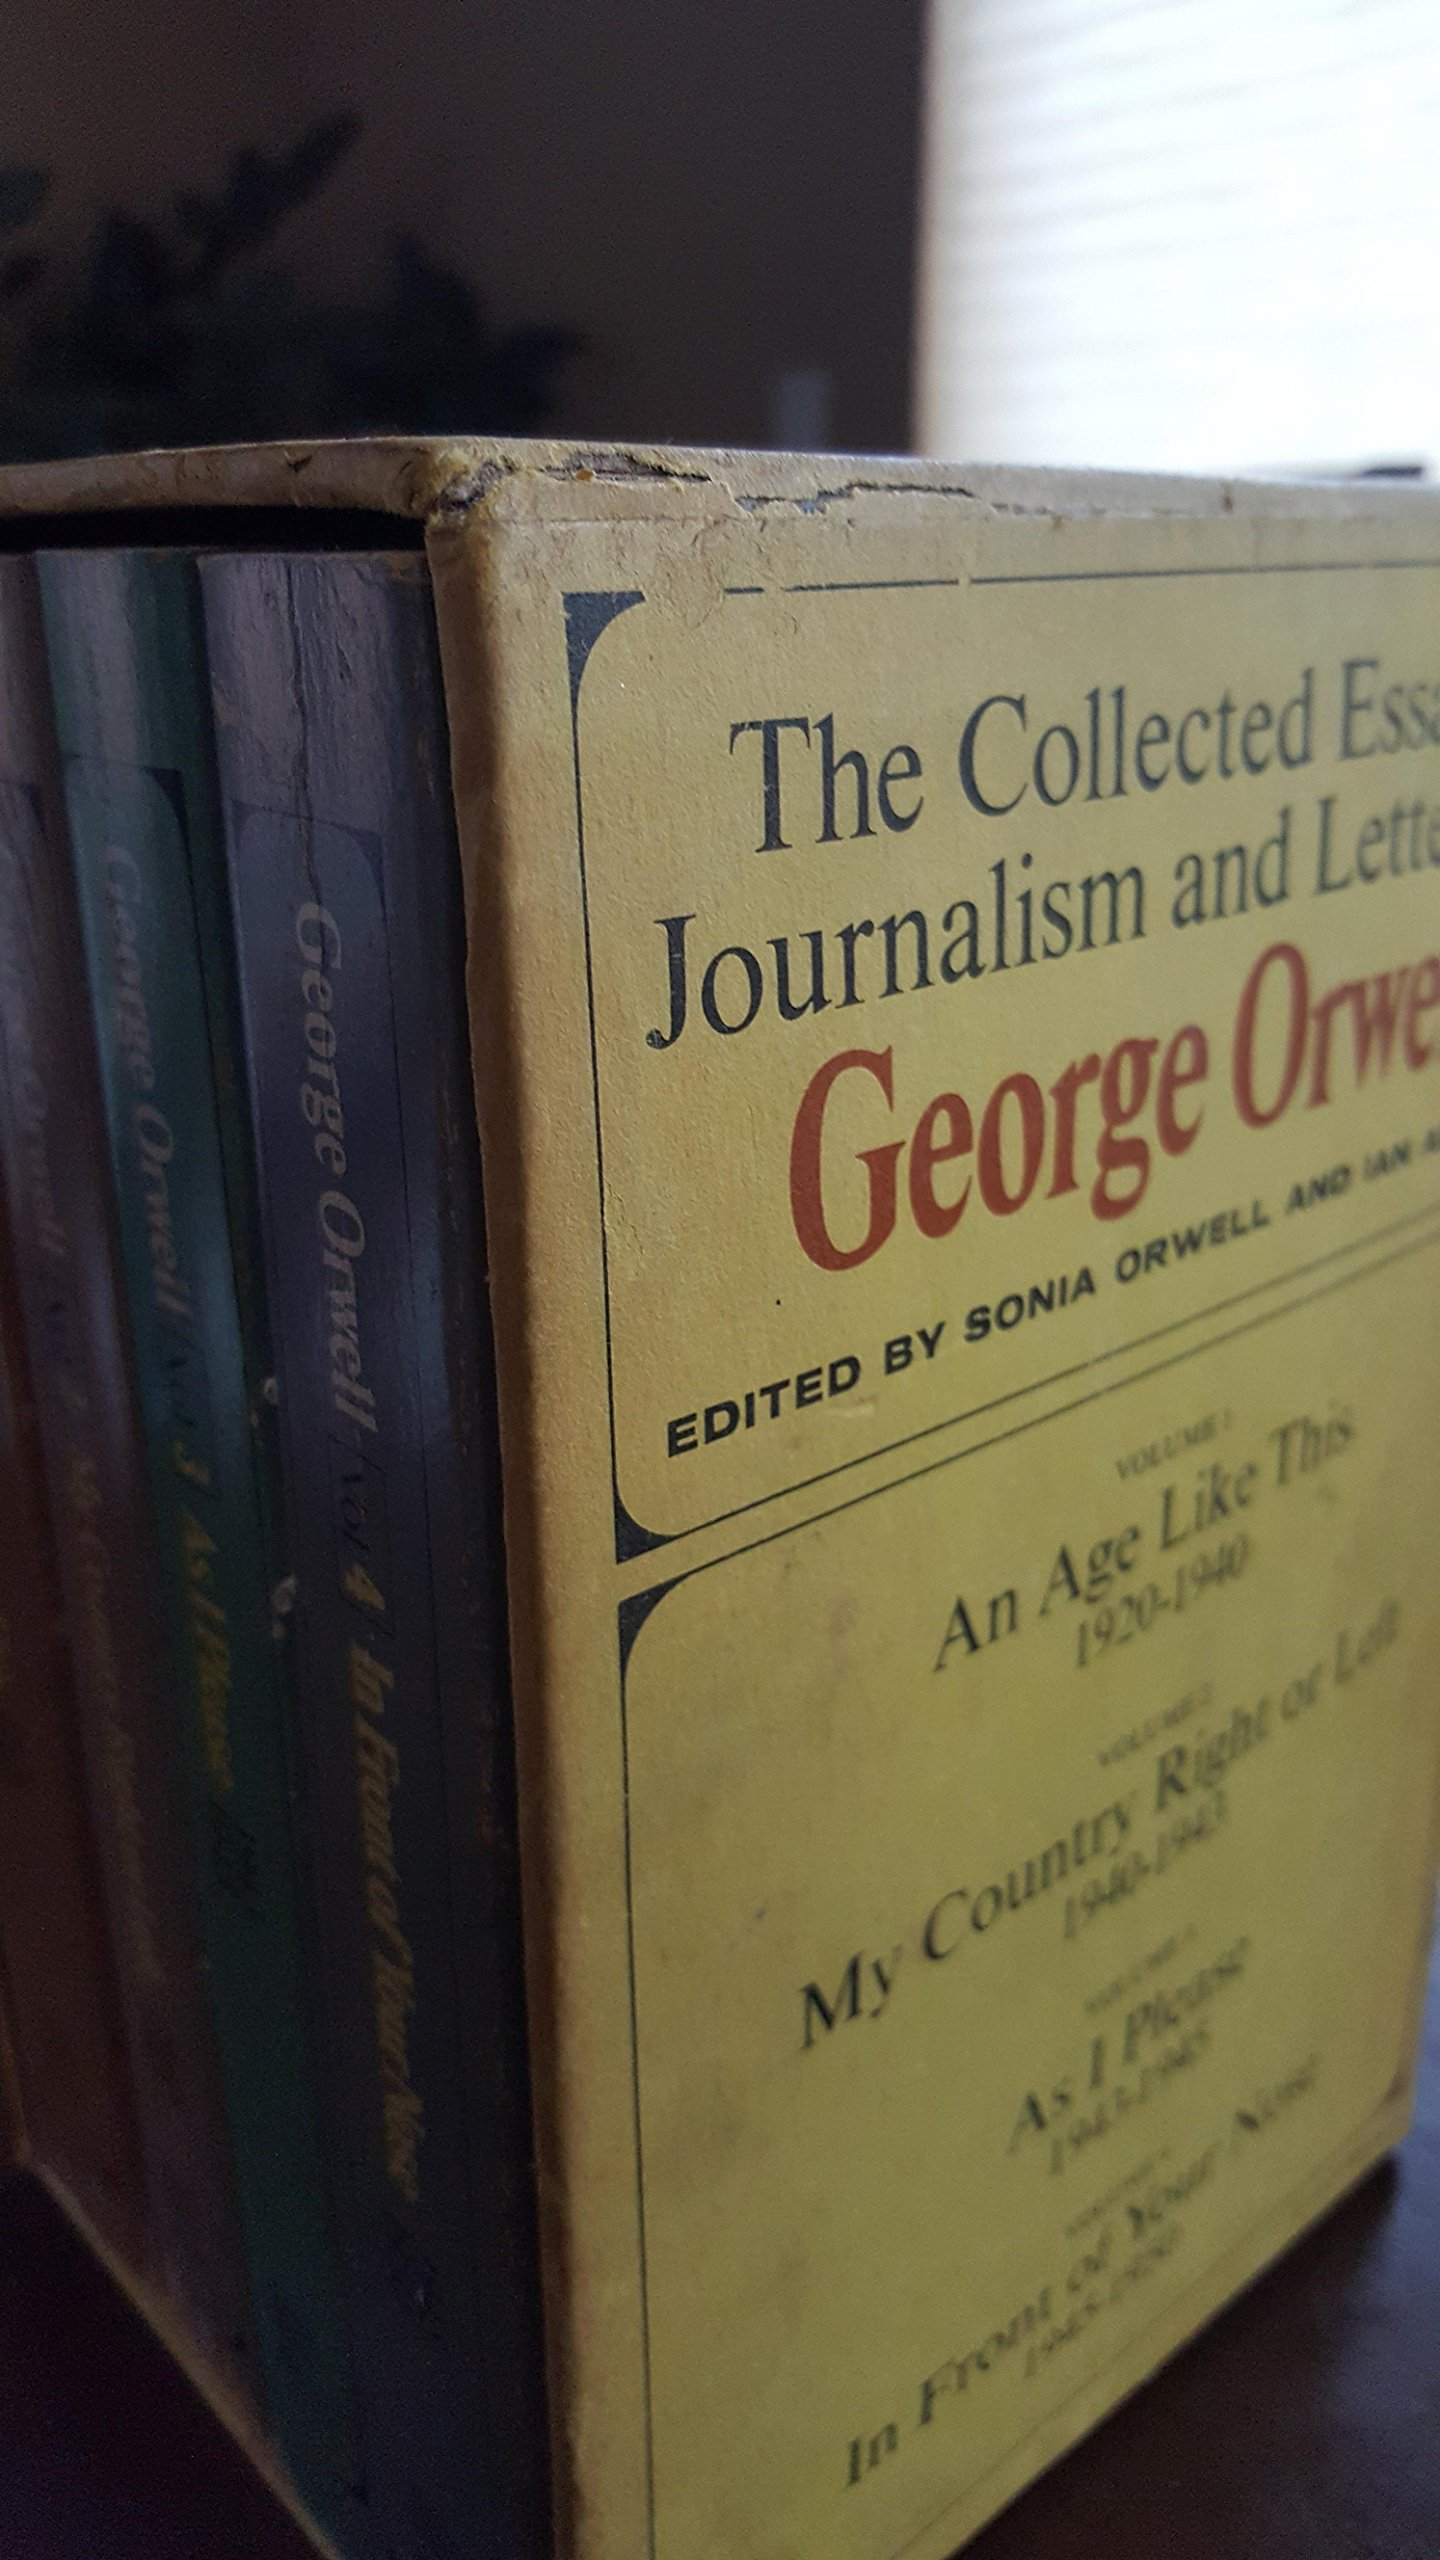 the collected essays journalism and letters of george orwell 4 the collected essays journalism and letters of george orwell 4 volume set george orwell sonia orwell ian angus com books